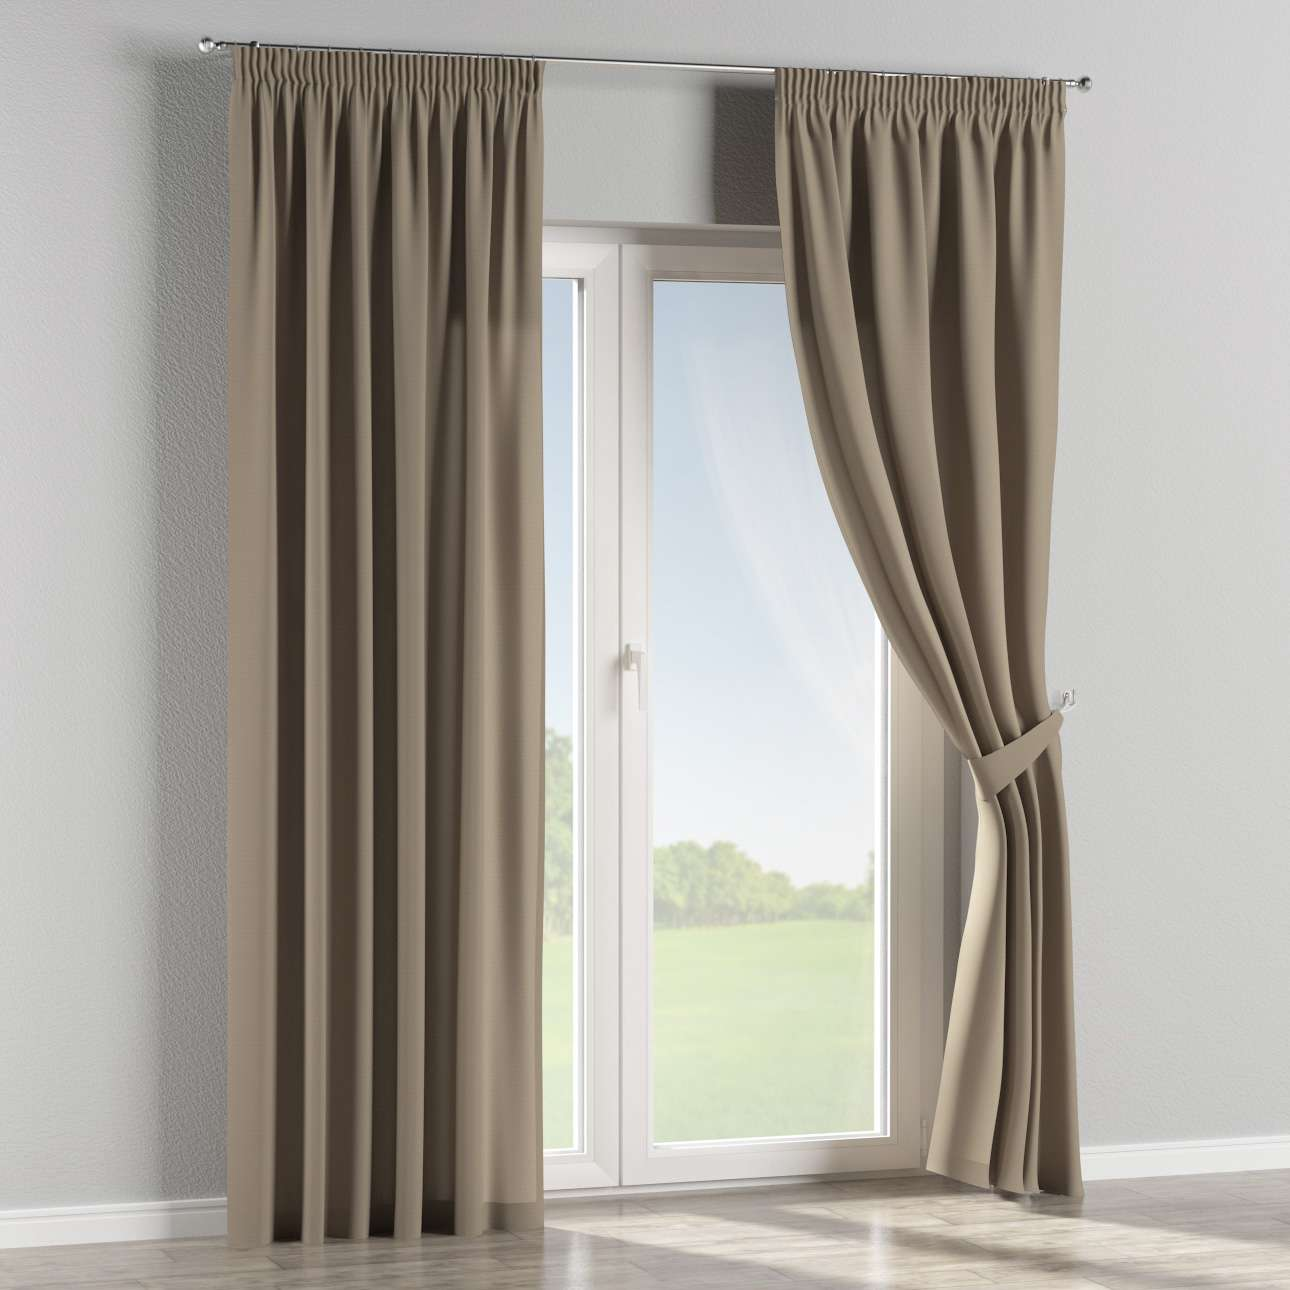 Pencil pleat curtains 130 x 260 cm (51 x 102 inch) in collection Panama Cotton, fabric: 702-28